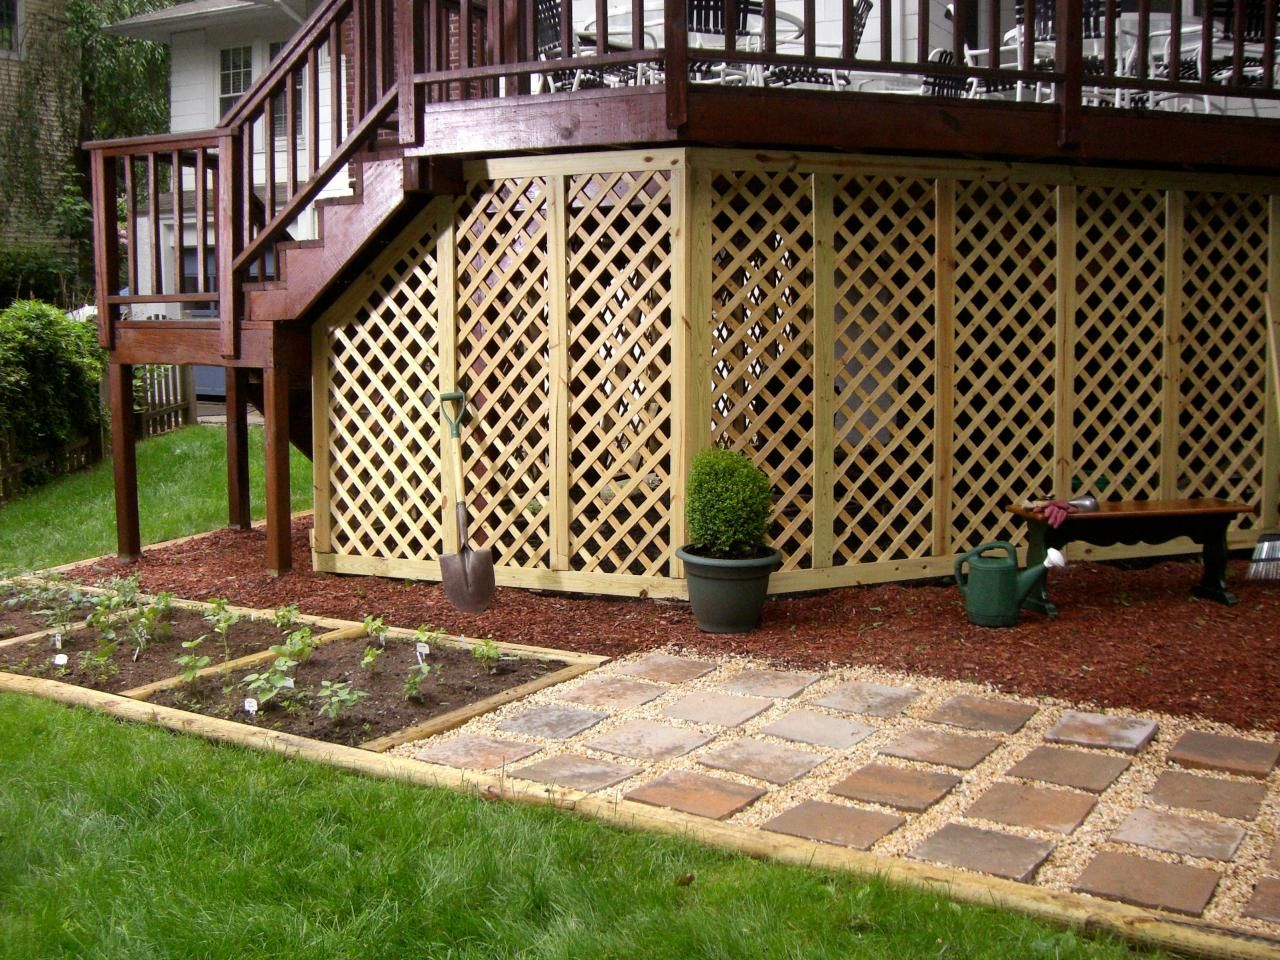 Adding Lattice to the Bottom of a Deck | Hgtv, Outdoor spaces and ...